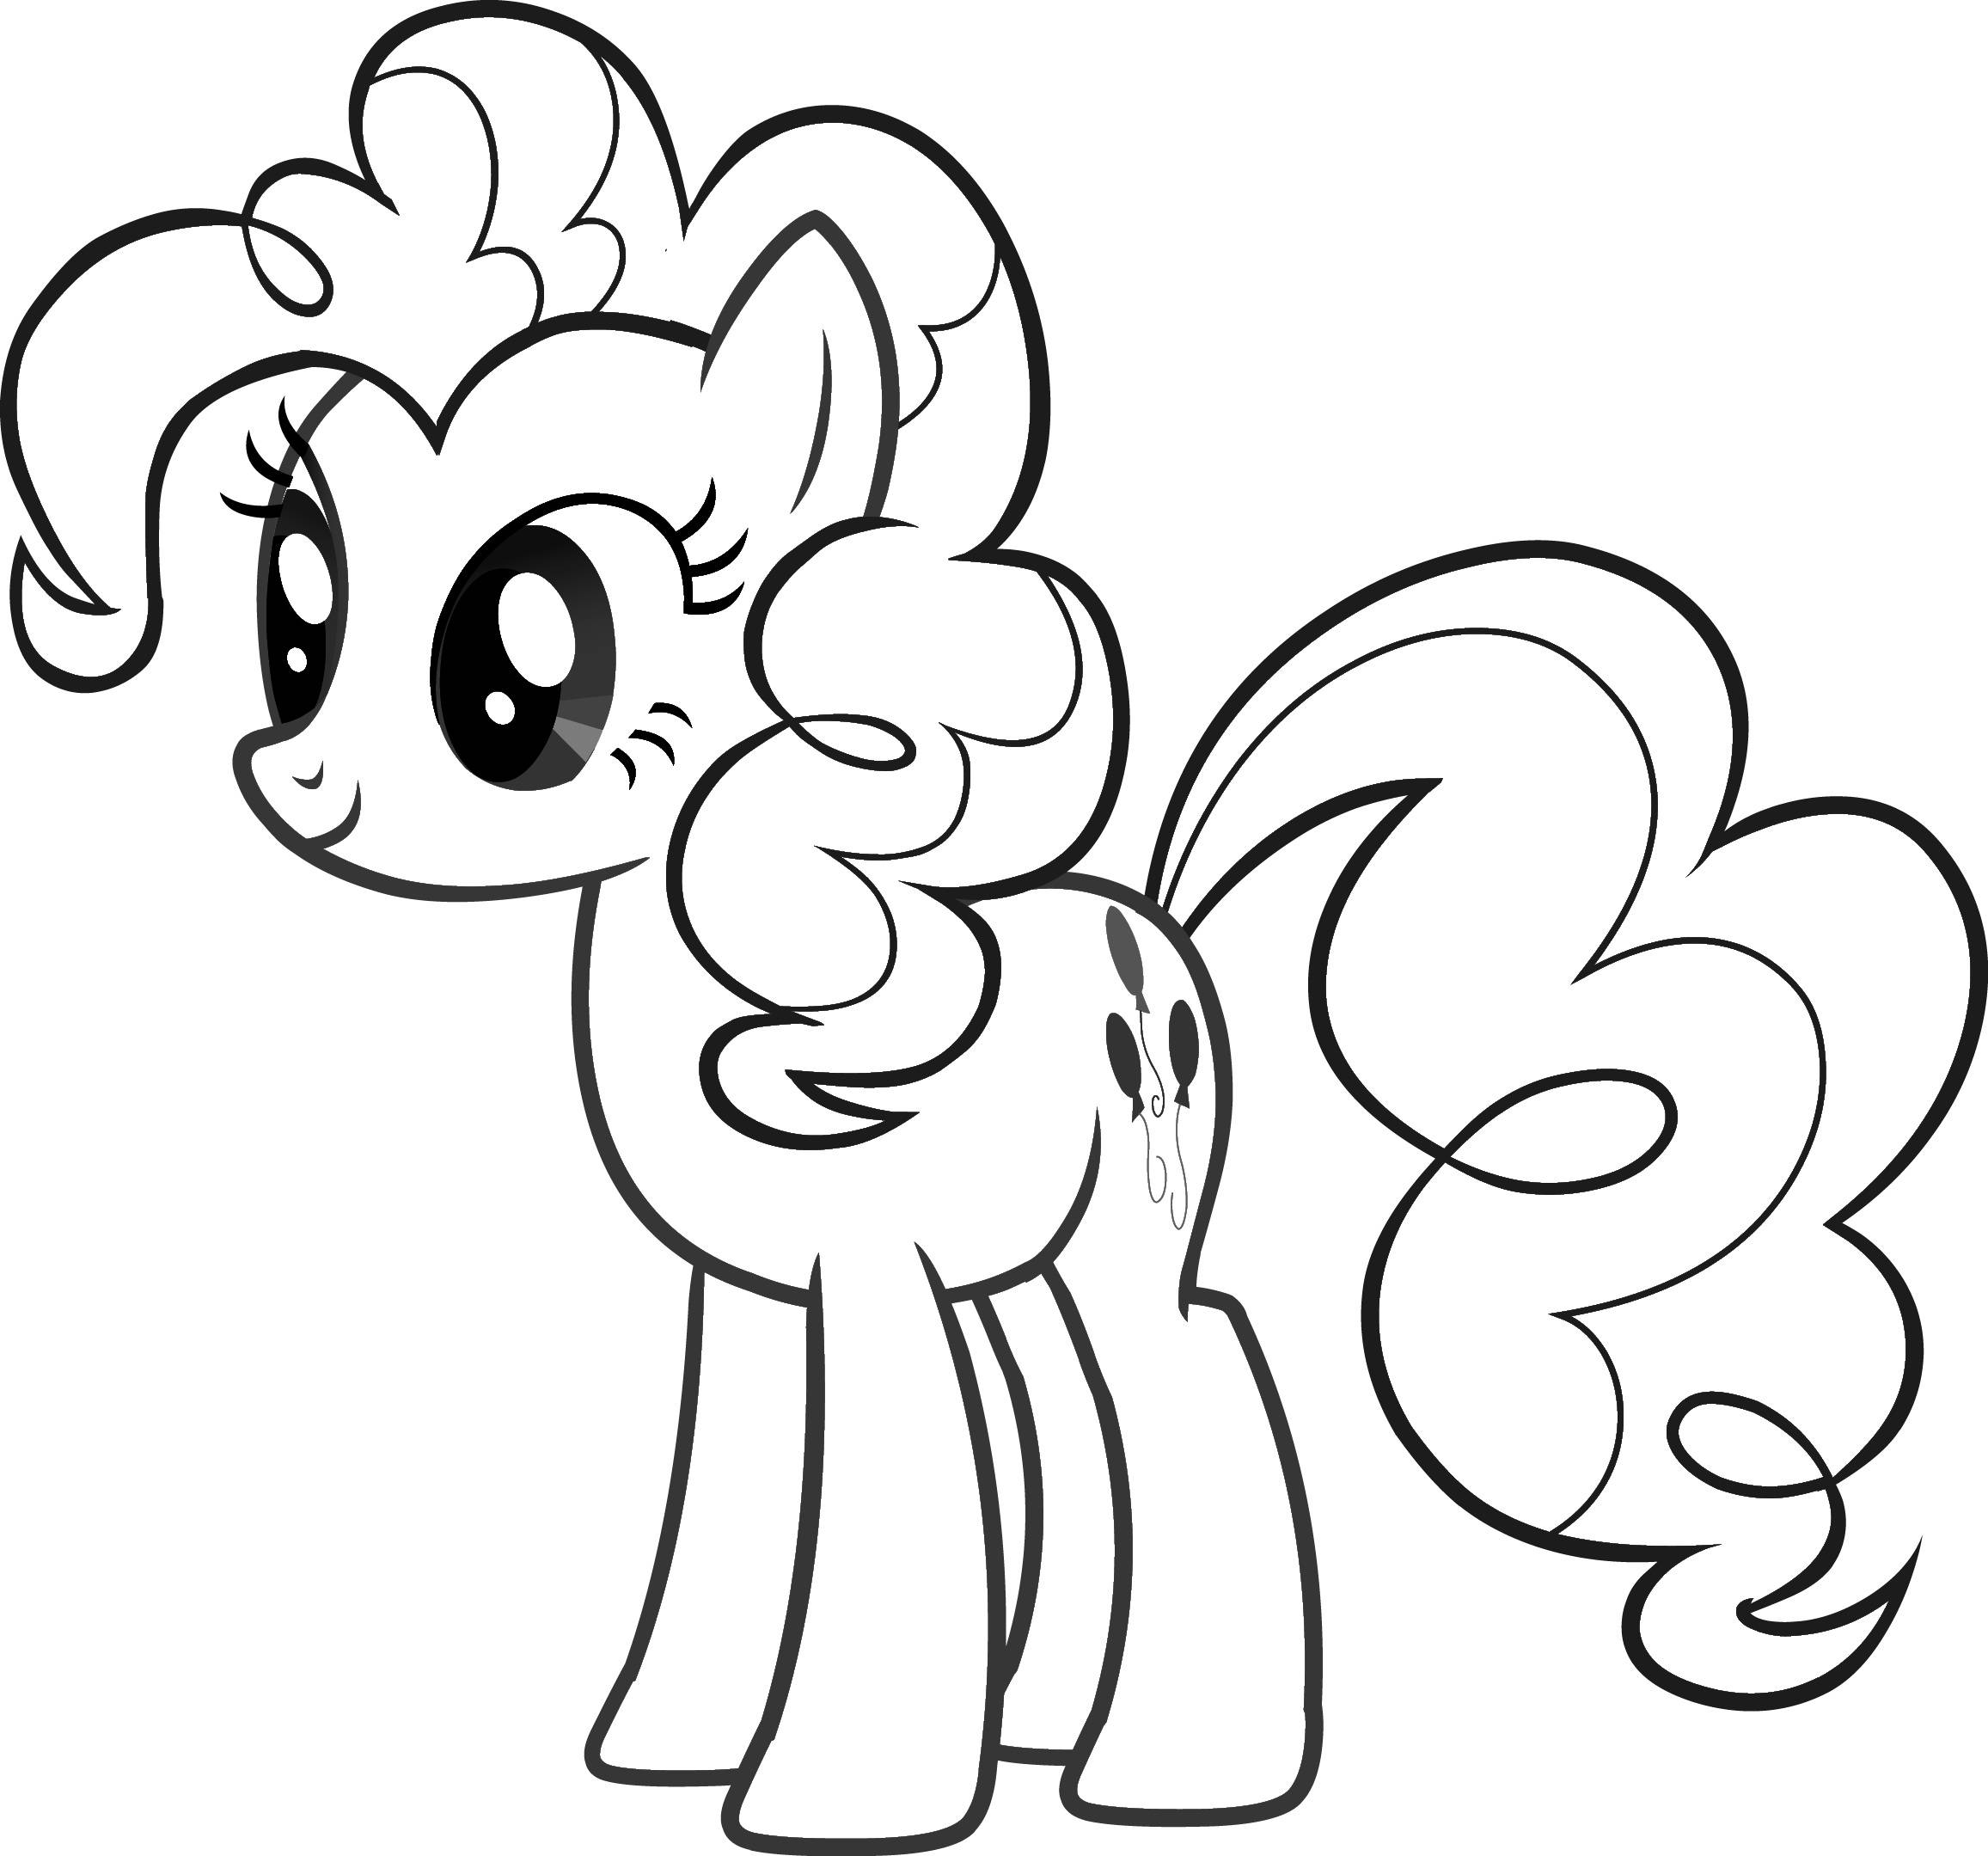 my little pony coloring pages rainbow dash rainbow dash pony coloring page my little pony coloring my pony rainbow little coloring pages dash